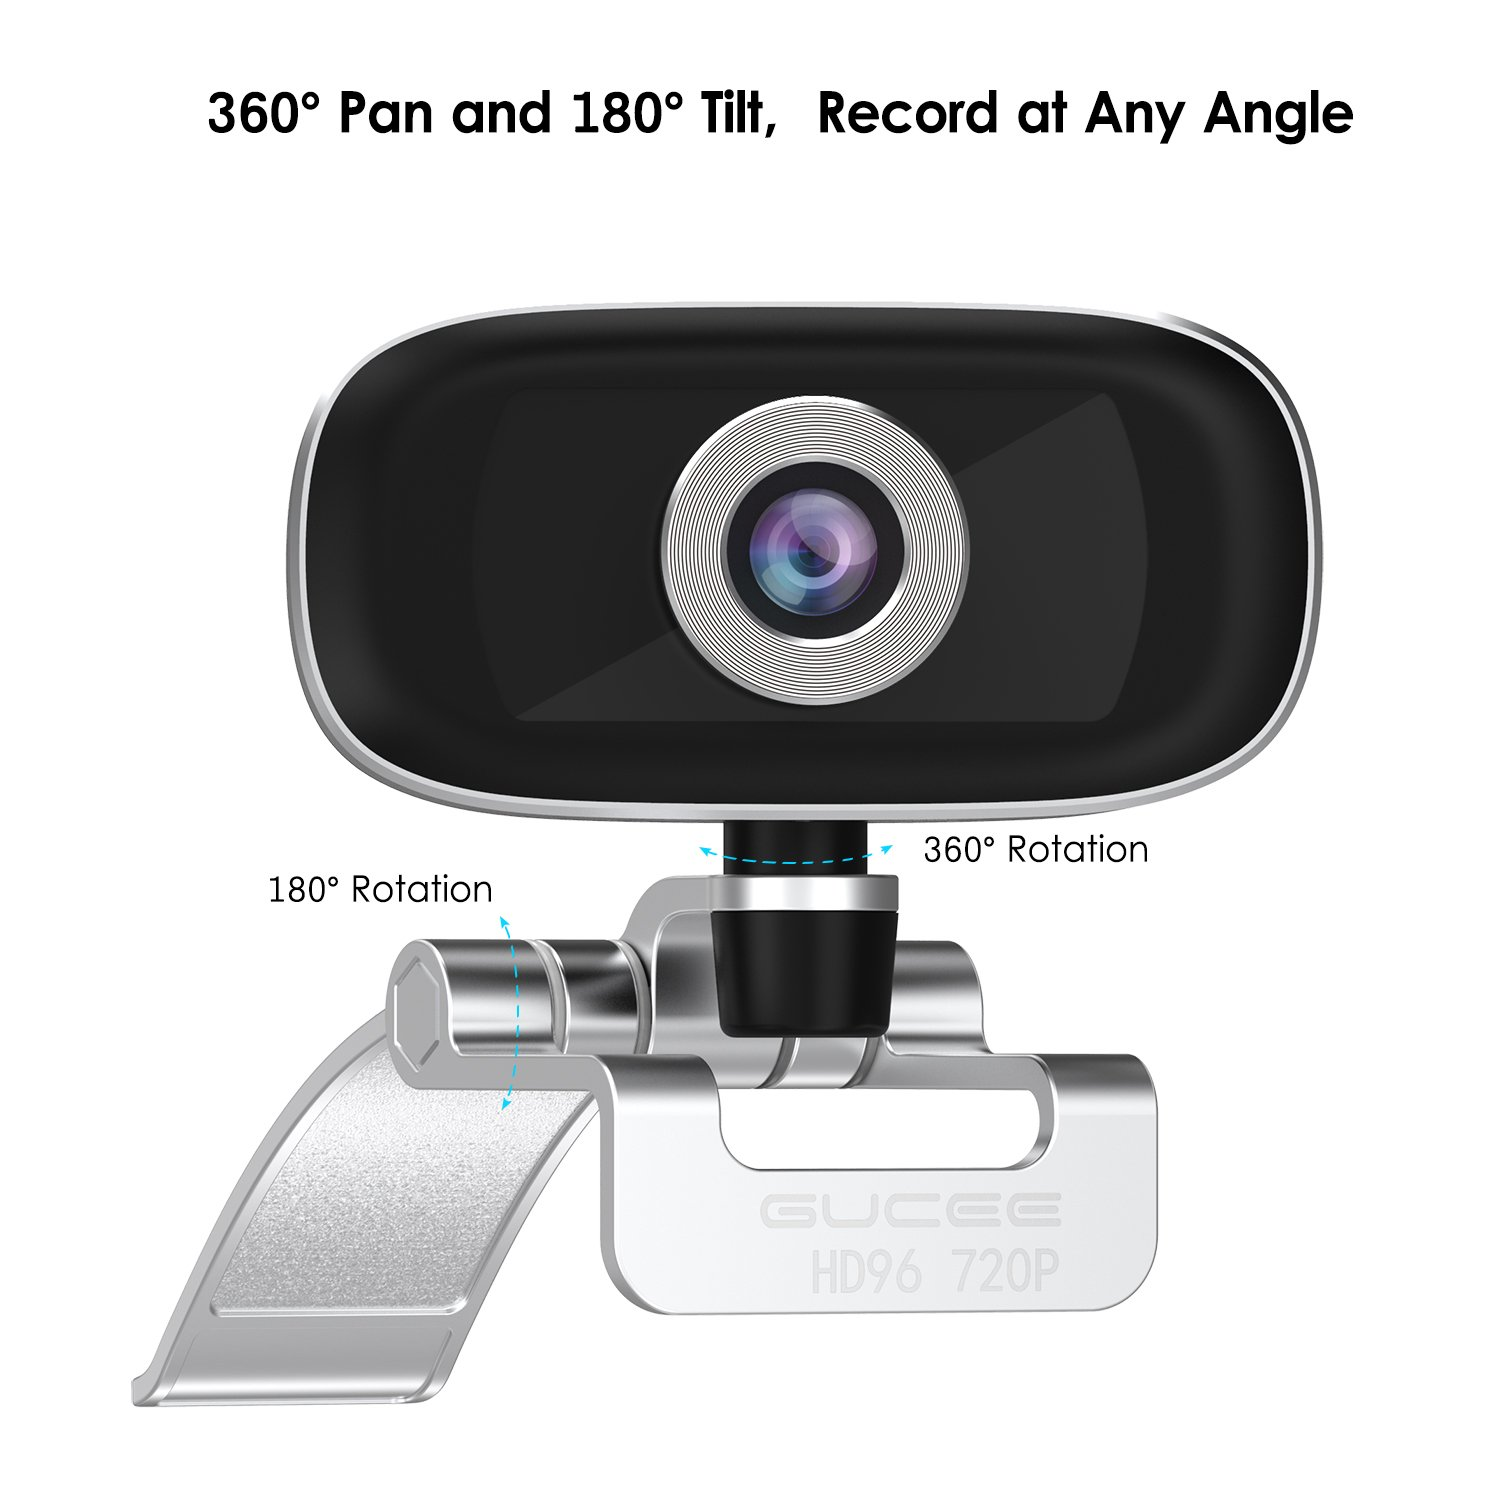 GUCEE HD96 720P HD Webcam with Tripod Ready Base (Tripod Not Included), Web Camera HD Microphone Wide Angle USB Plug and Play, Widescreen Calling Recording for Skype, Win 7 / 8 / 10, Apple Mac OS X by iRush (Image #7)